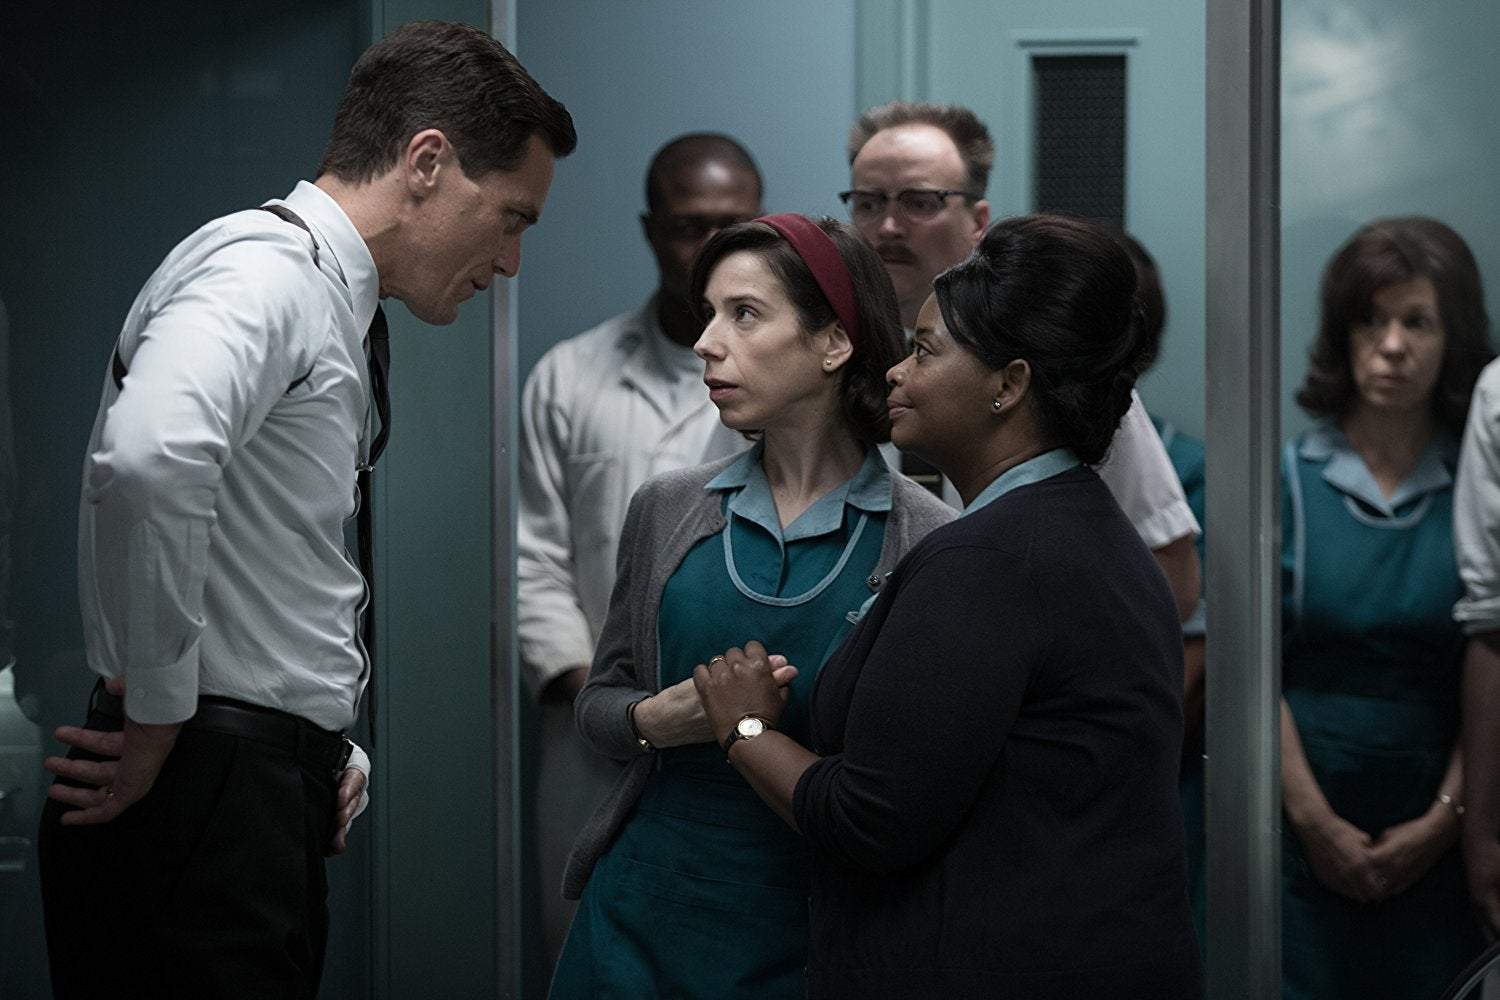 Michael Shannon, Sally Hawkins, and Octavia Spencer